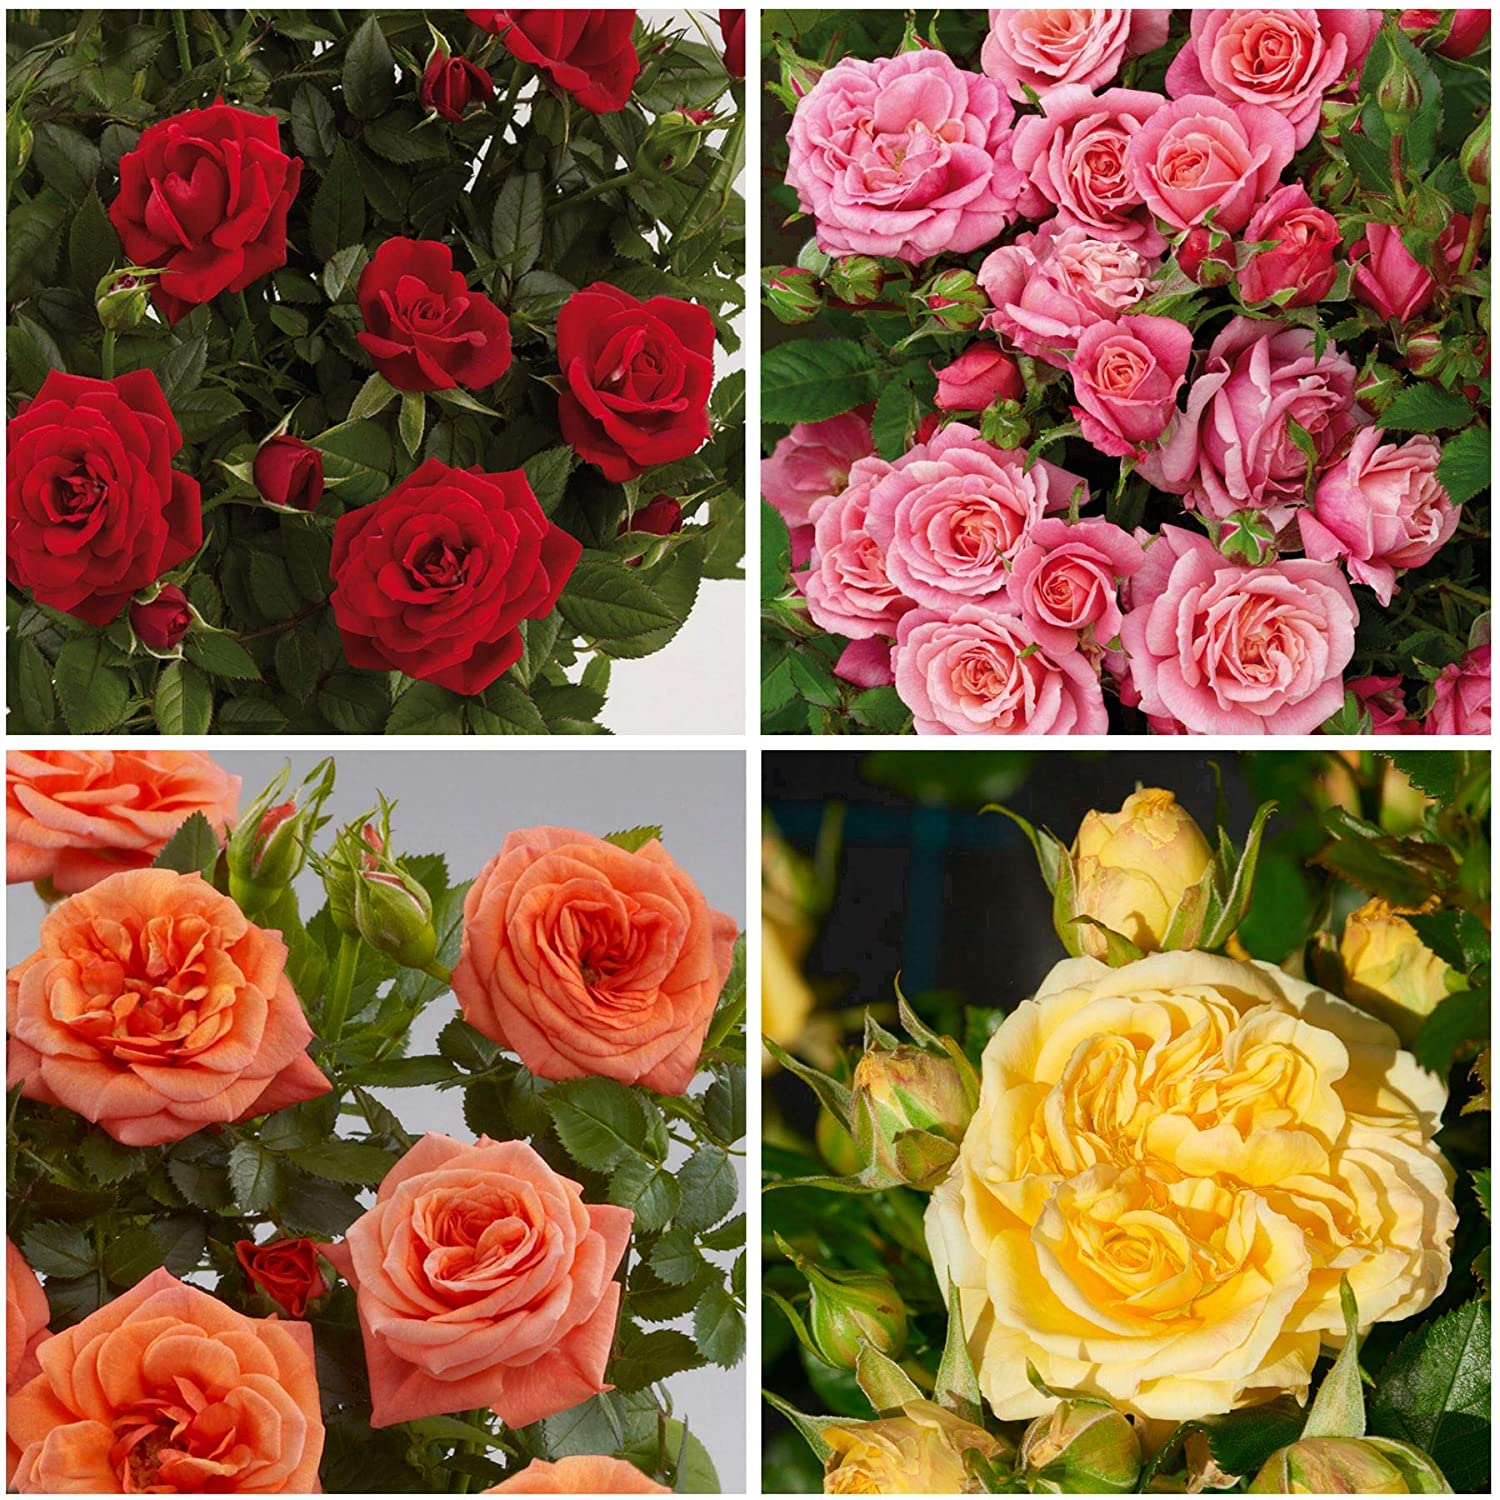 8X Dwarf Rose Garden Shrub Variety Collection for Patio Containers Planters /& Borders